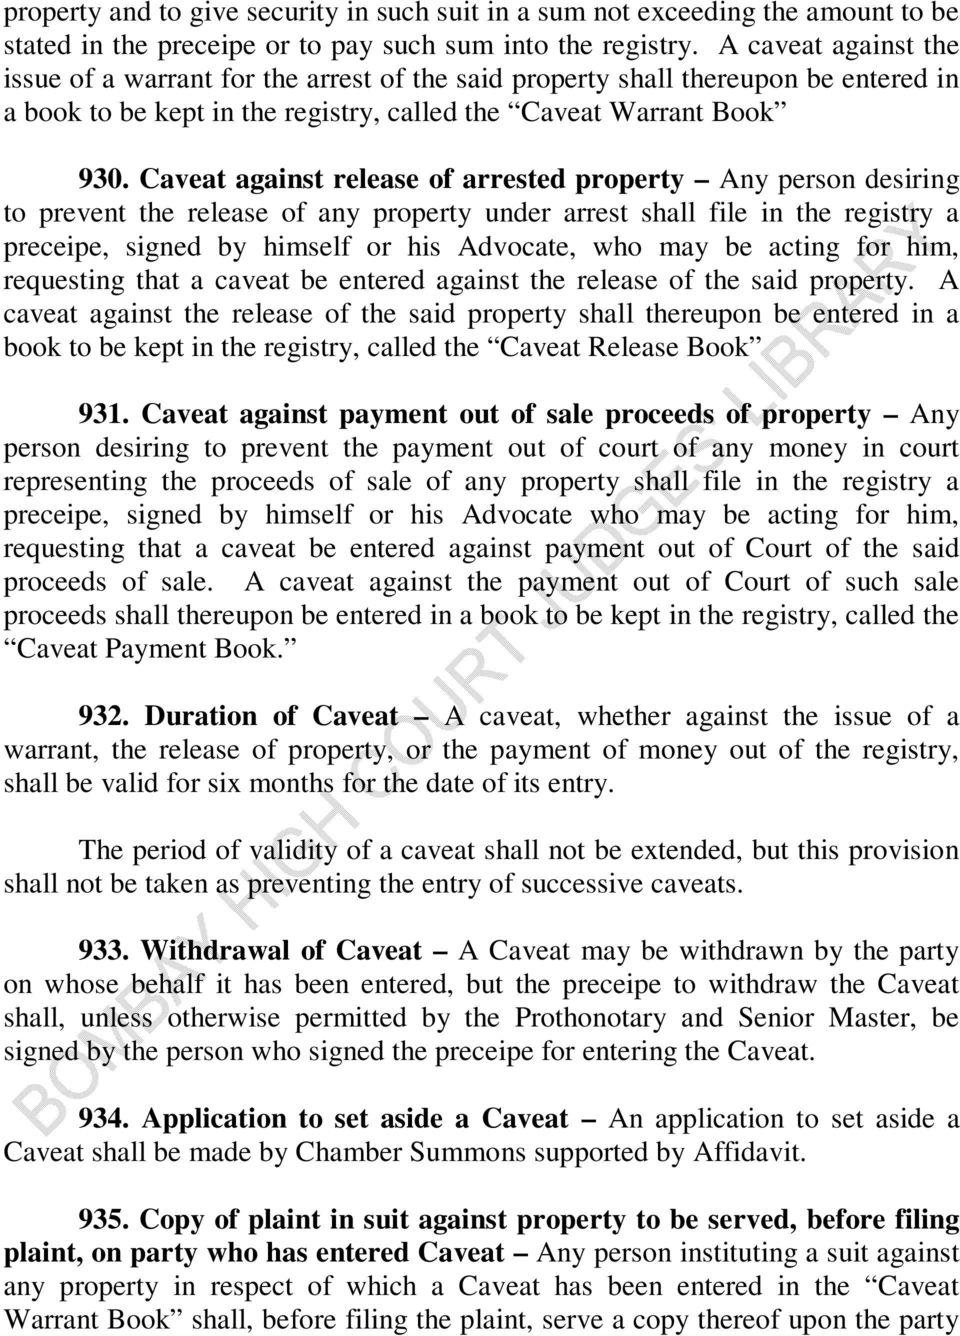 Caveat against release of arrested property Any person desiring to prevent the release of any property under arrest shall file in the registry a preceipe, signed by himself or his Advocate, who may